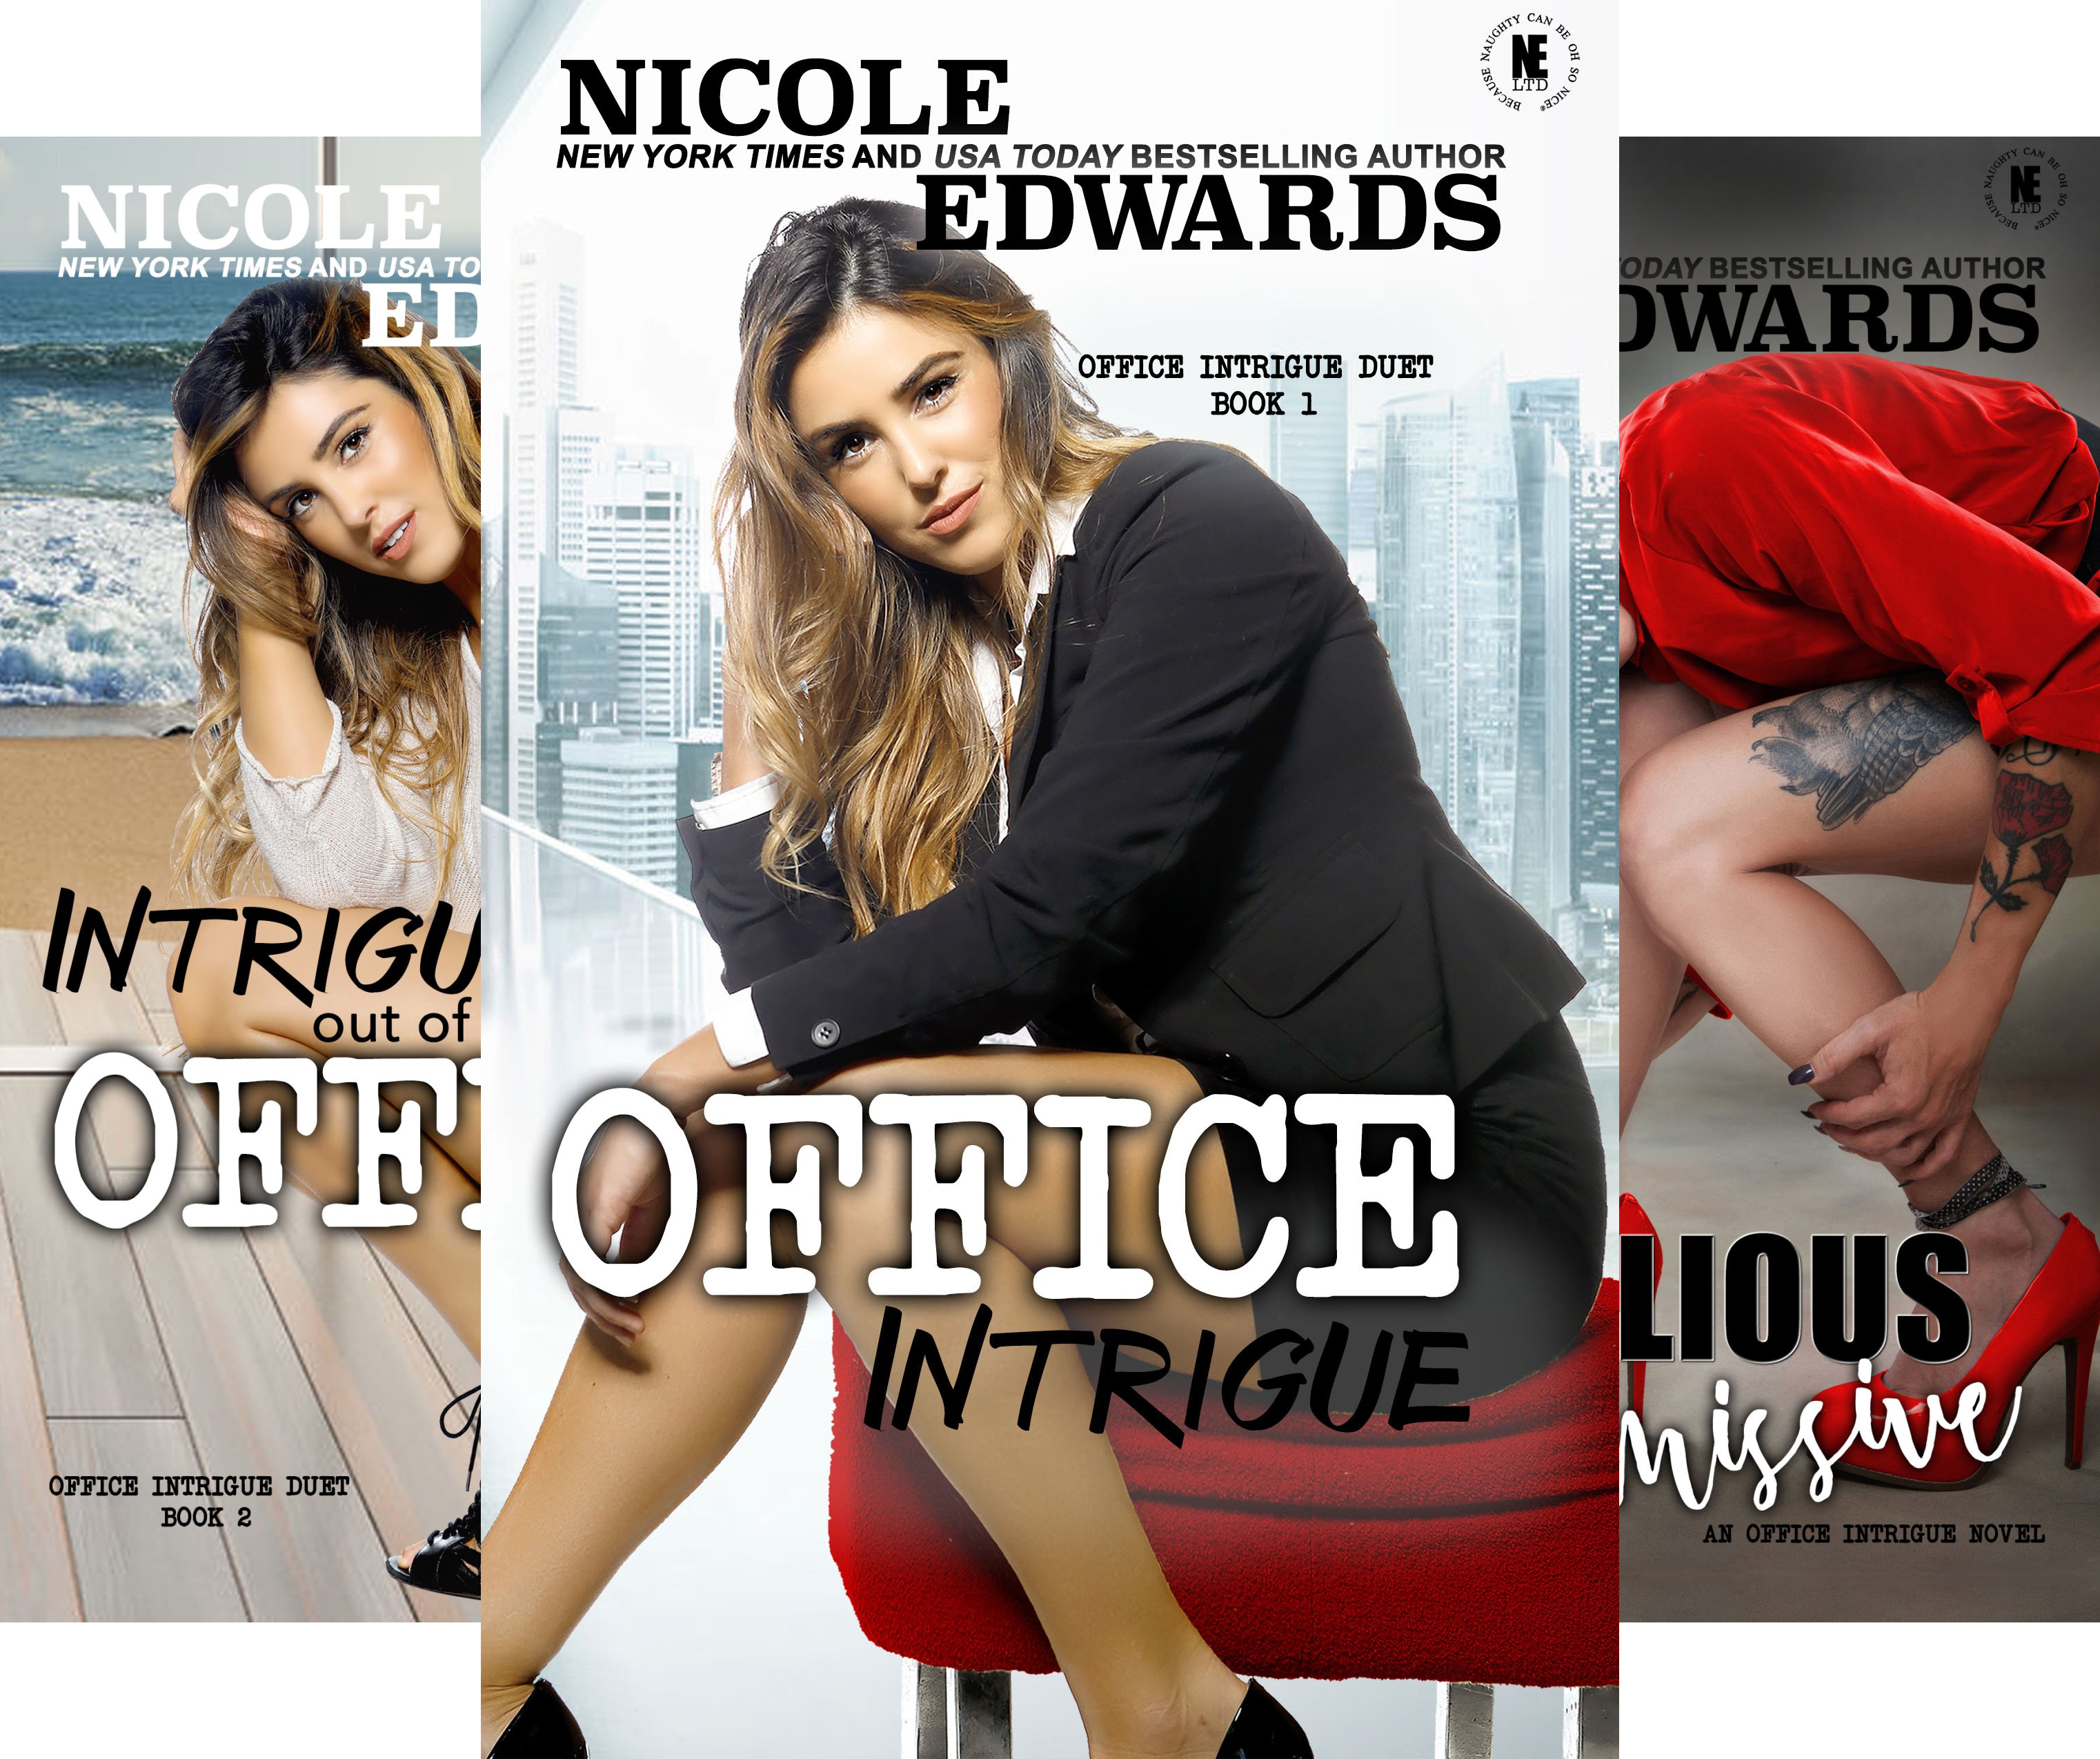 Office Intrigue Duet (3 Book Series)